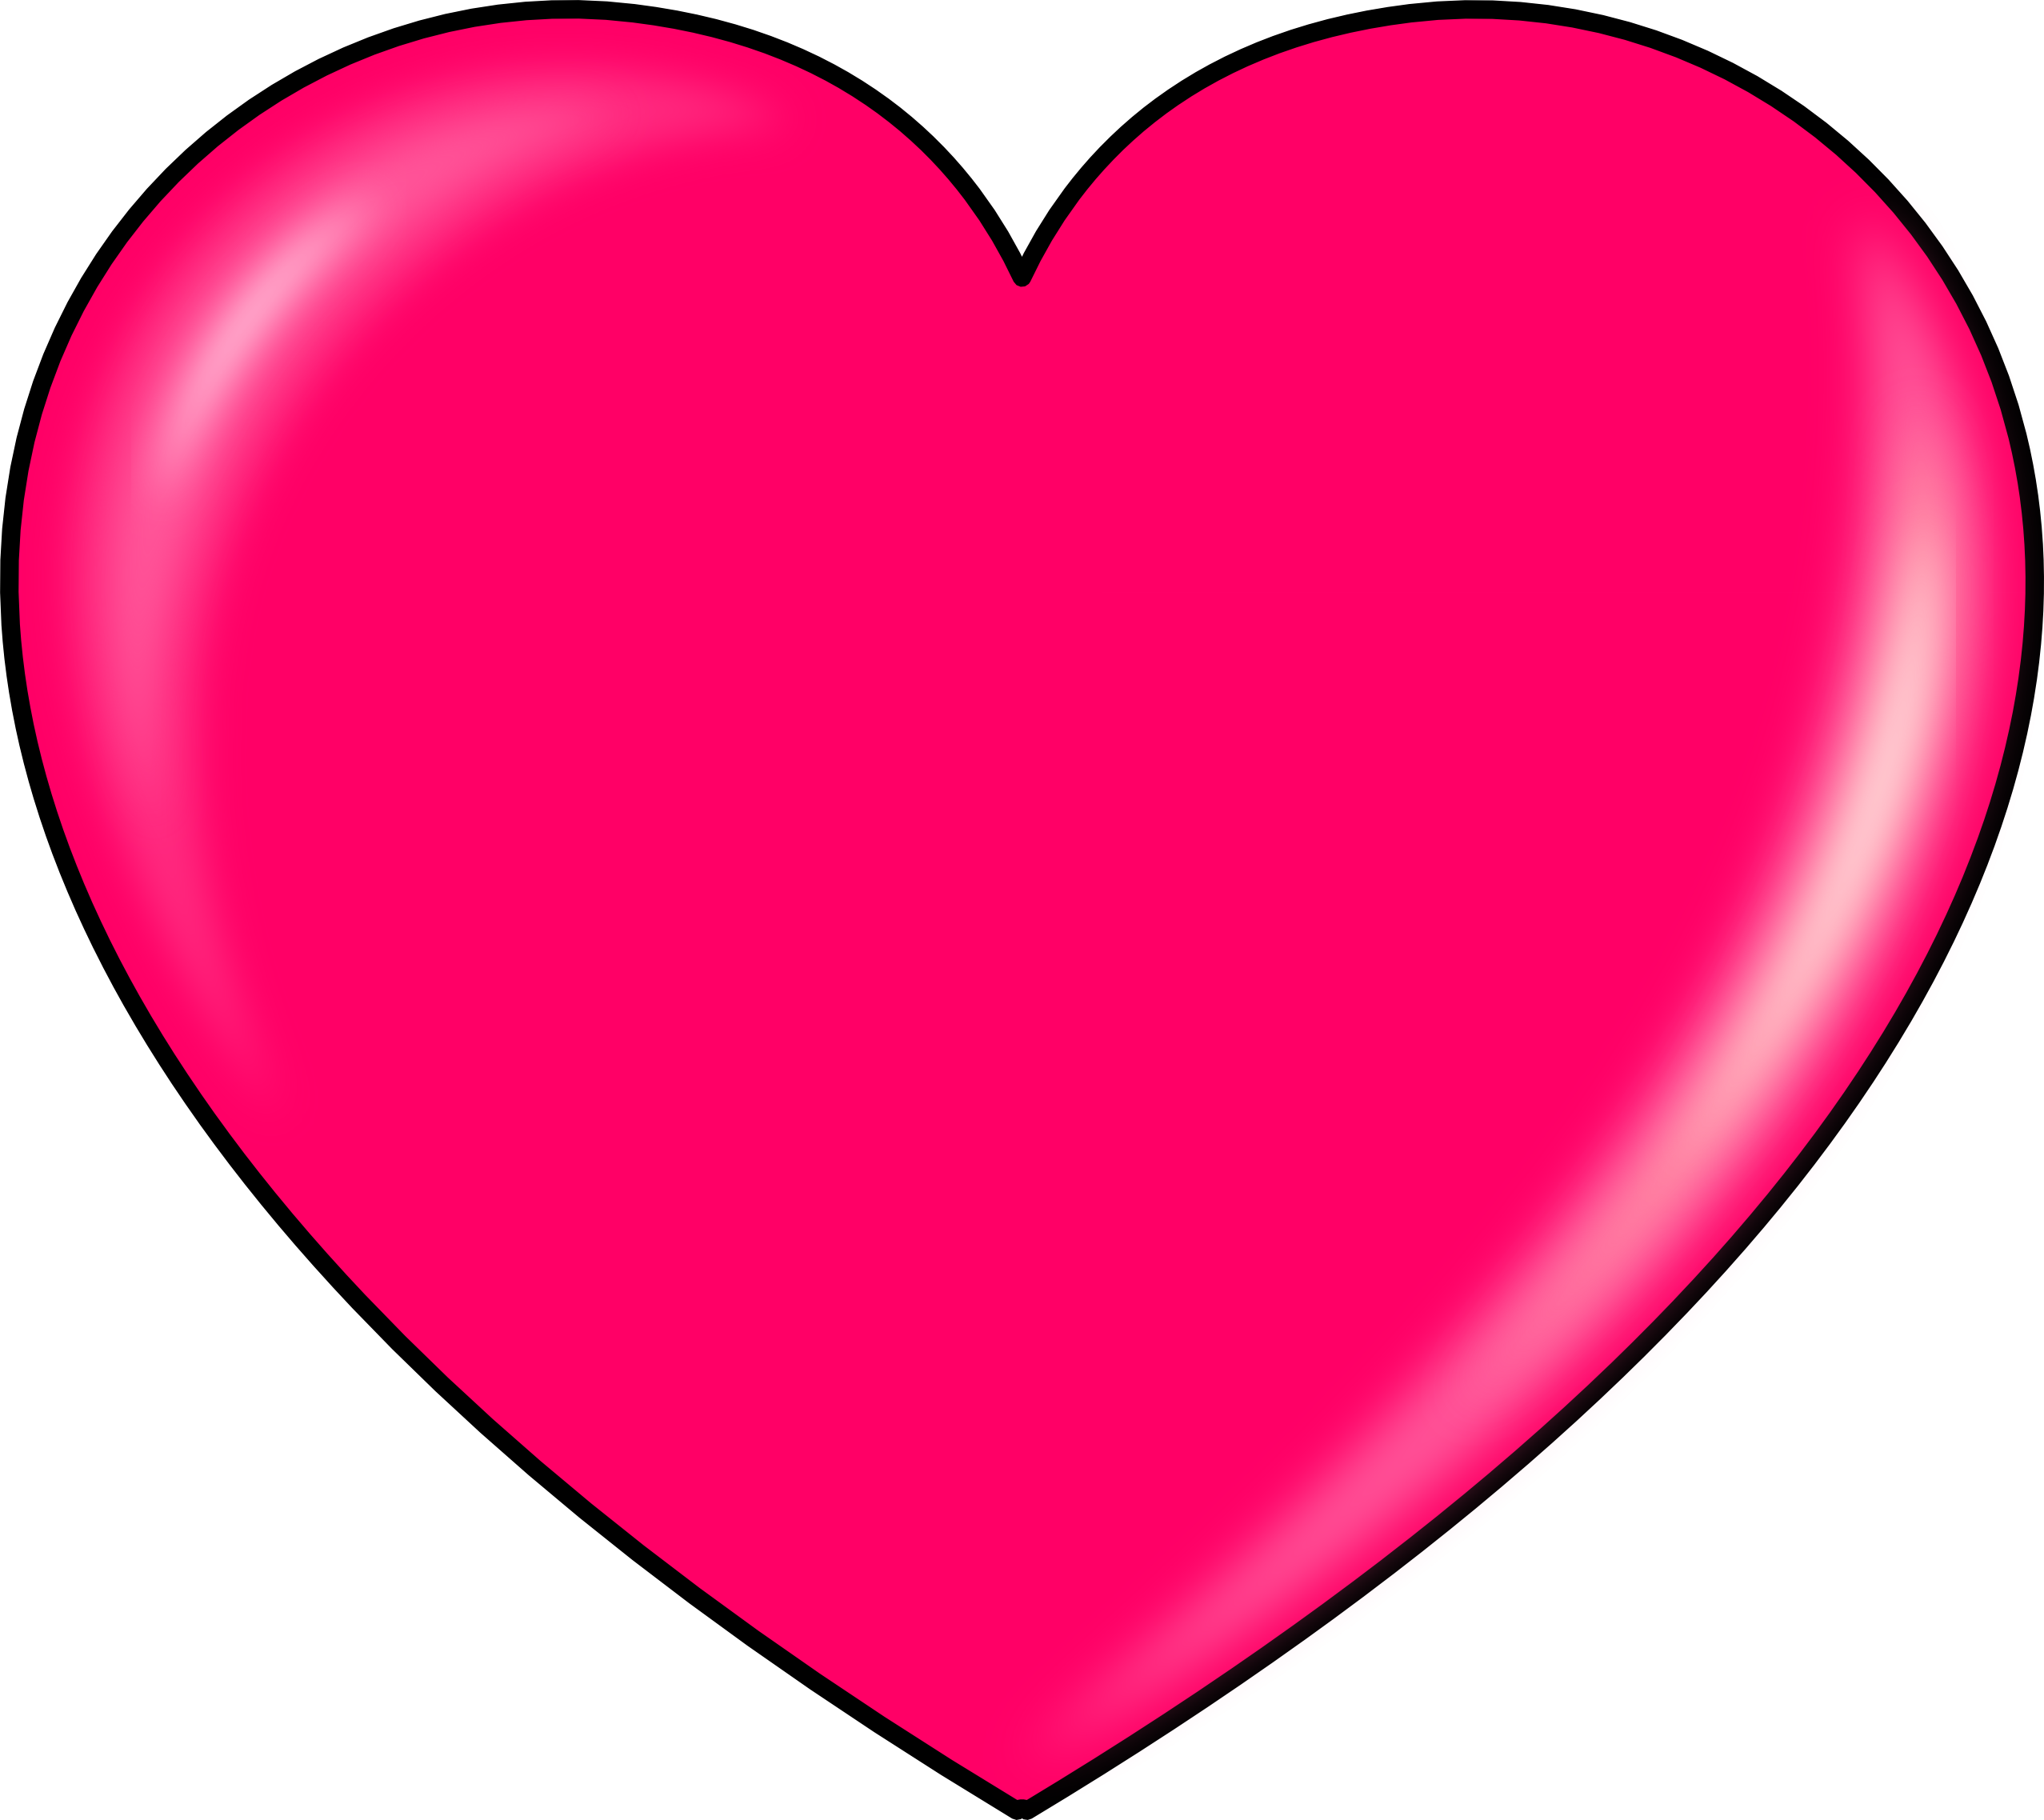 Love pink png. Heart clipart